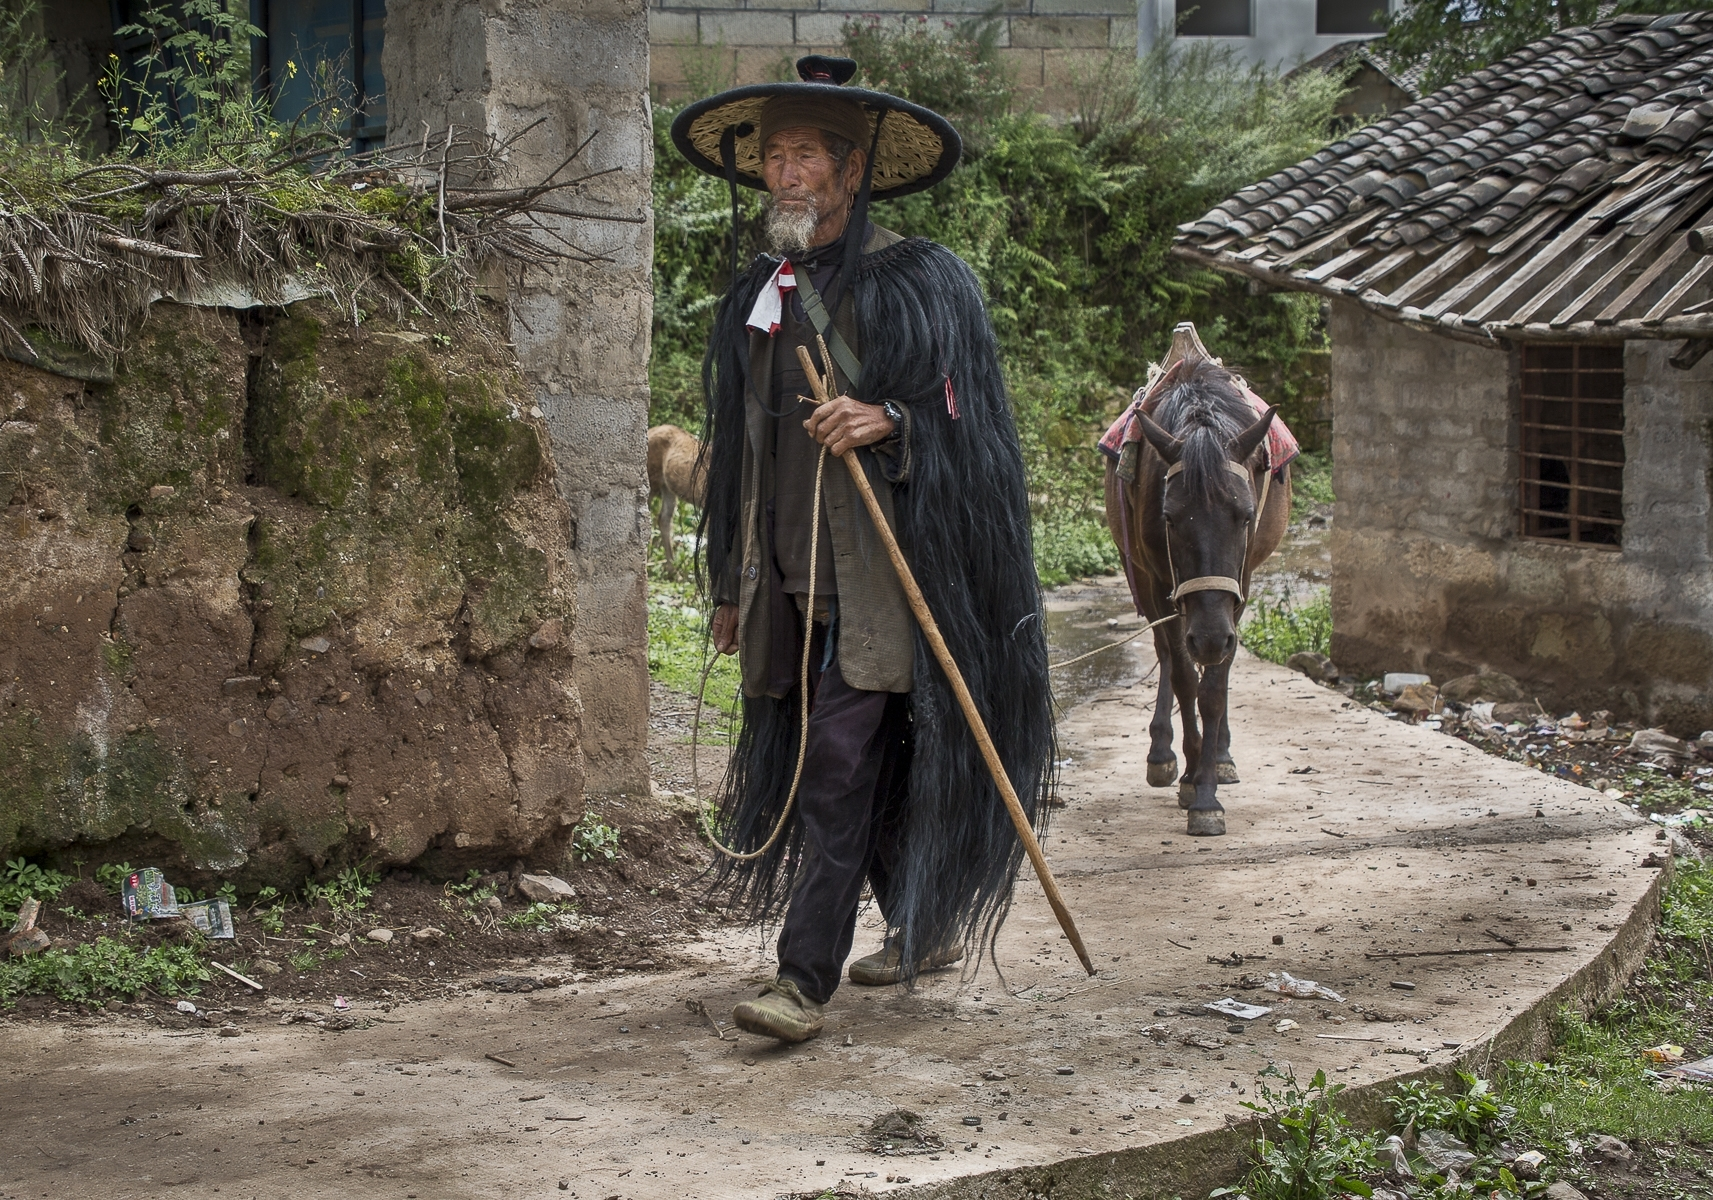 Old-Farmer-Walks-to-the-Weekly-Market-Sichuan-China-TM-Best-in-Show-by-Dorothy-Weaver-MR